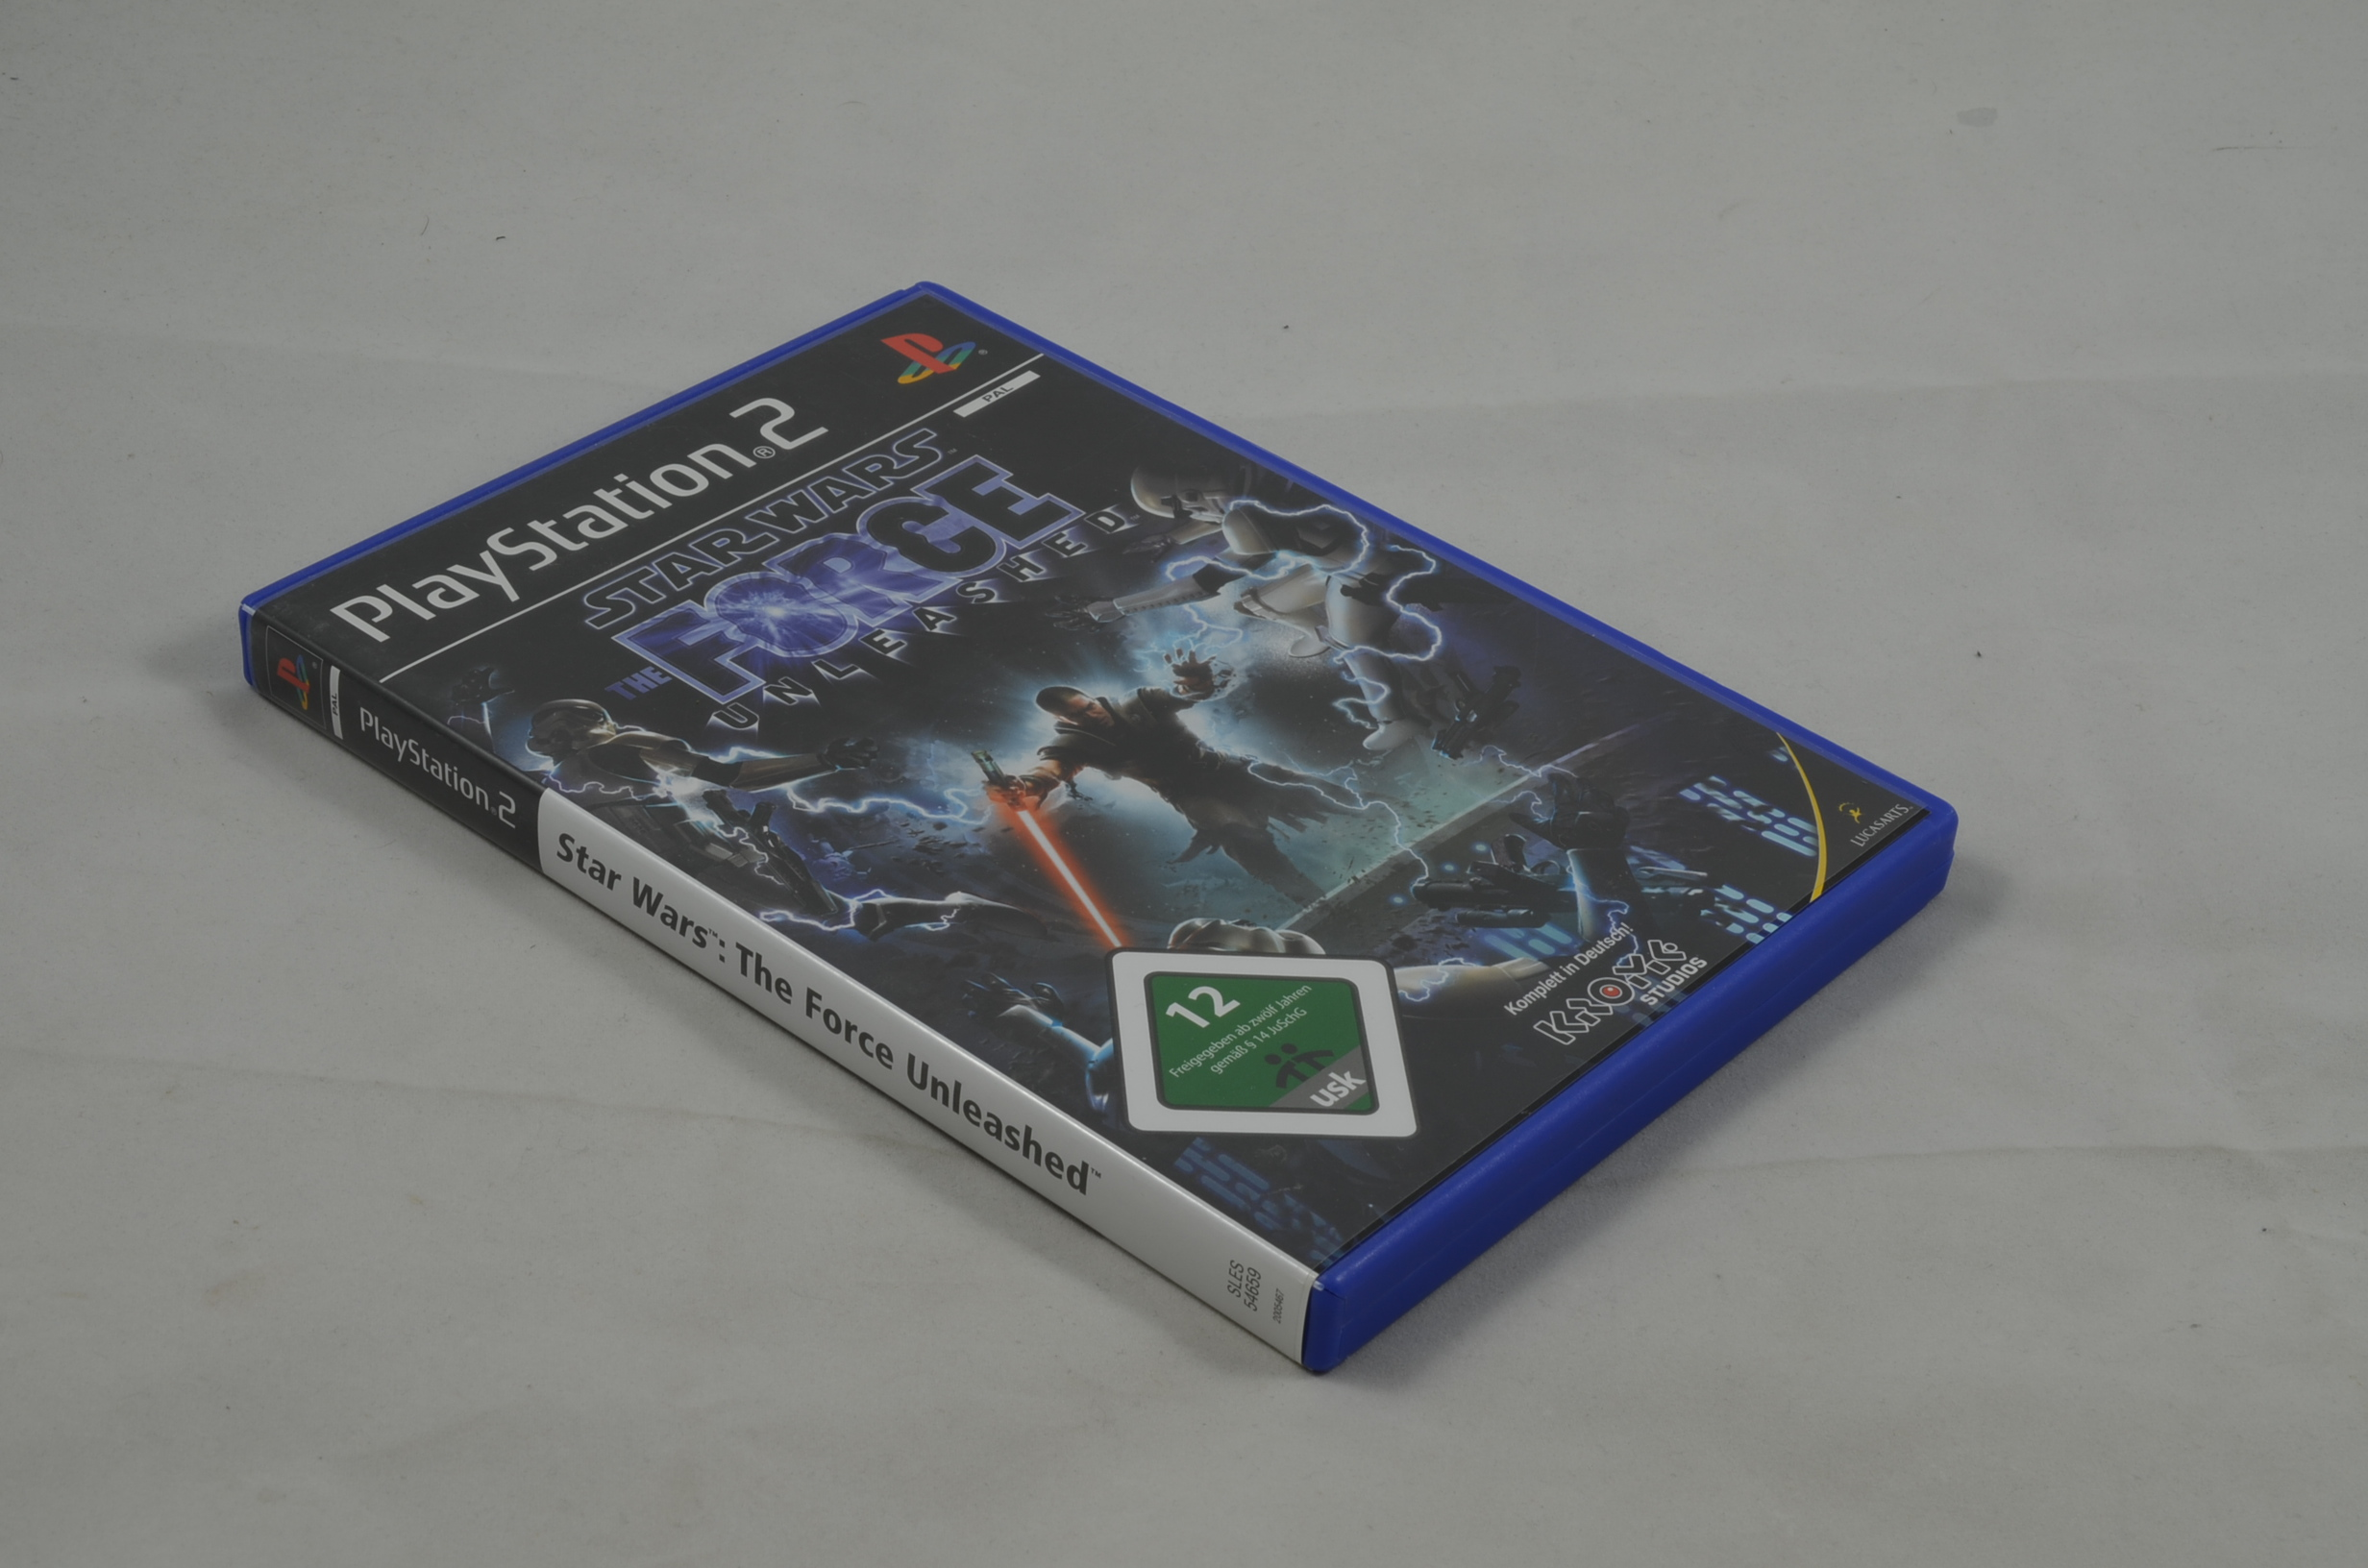 Produktbild von Star Wars The Force Unleashed Box NO GAME KEIN SPIEL